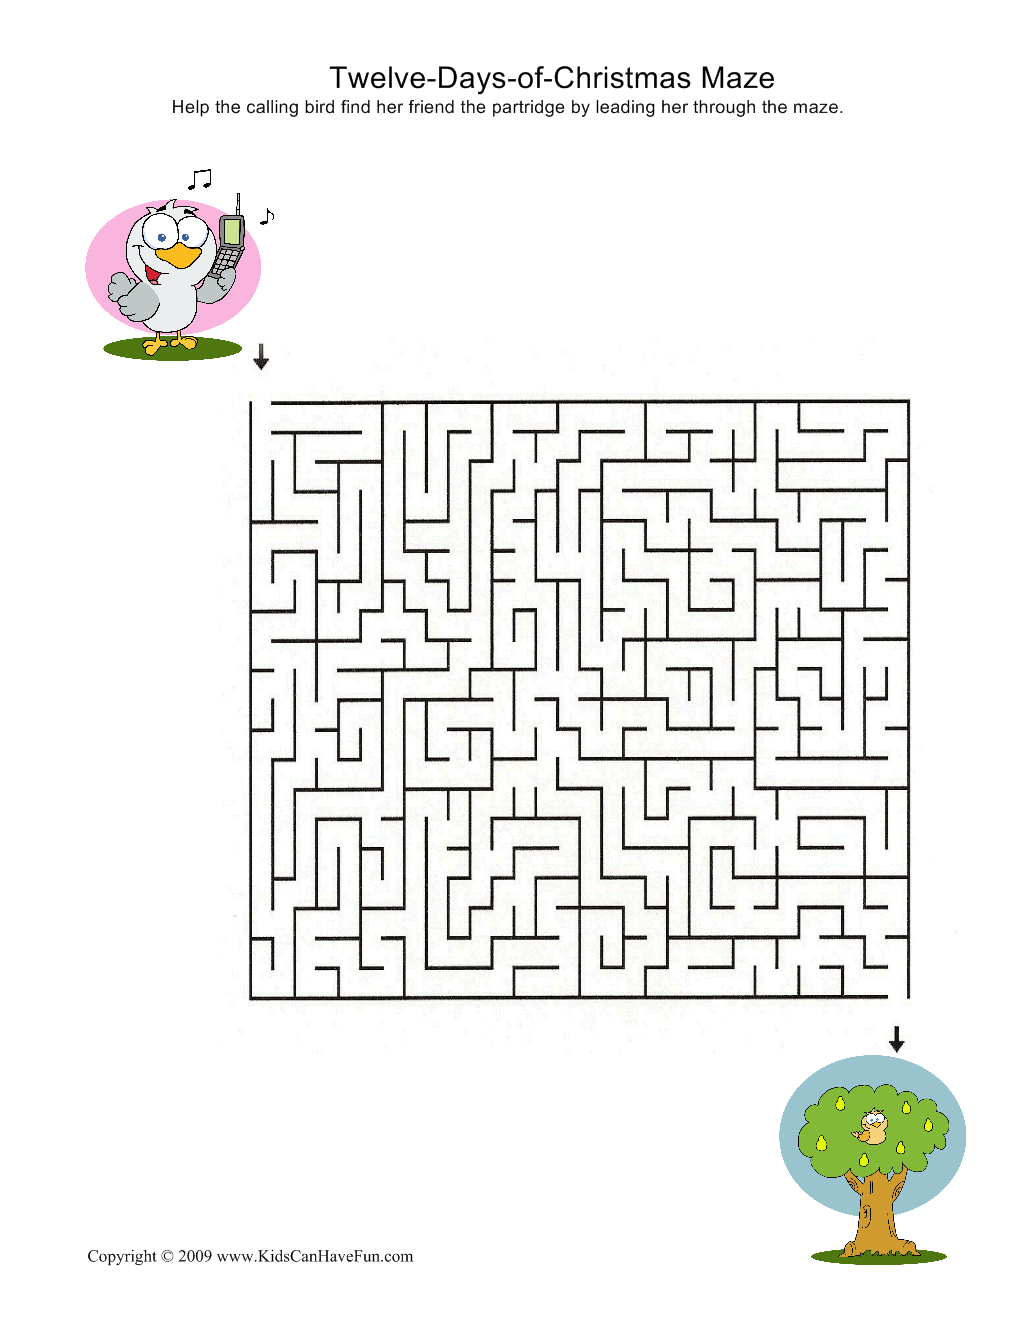 Twelve Days Of Christmas Maze Thanksgiving Activities For Kids Thanksgiving Coloring Pages Thanksgiving Activities [ 1319 x 1019 Pixel ]